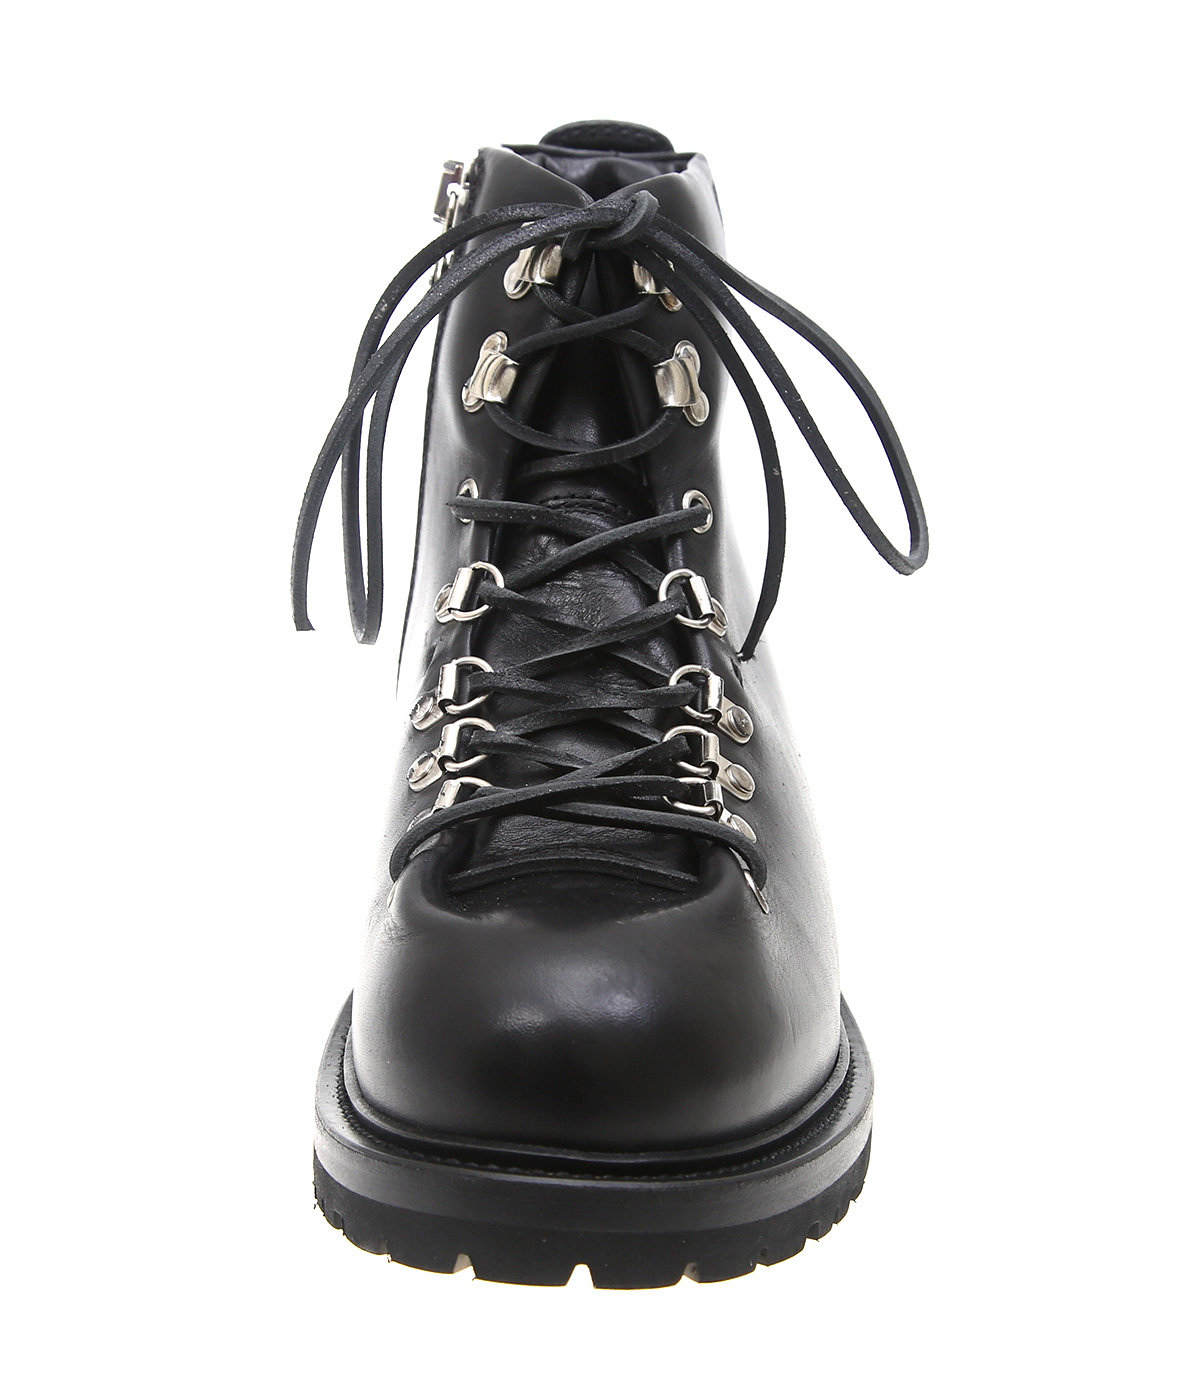 CANALONE TREKKING BOOTS(LEATHER)